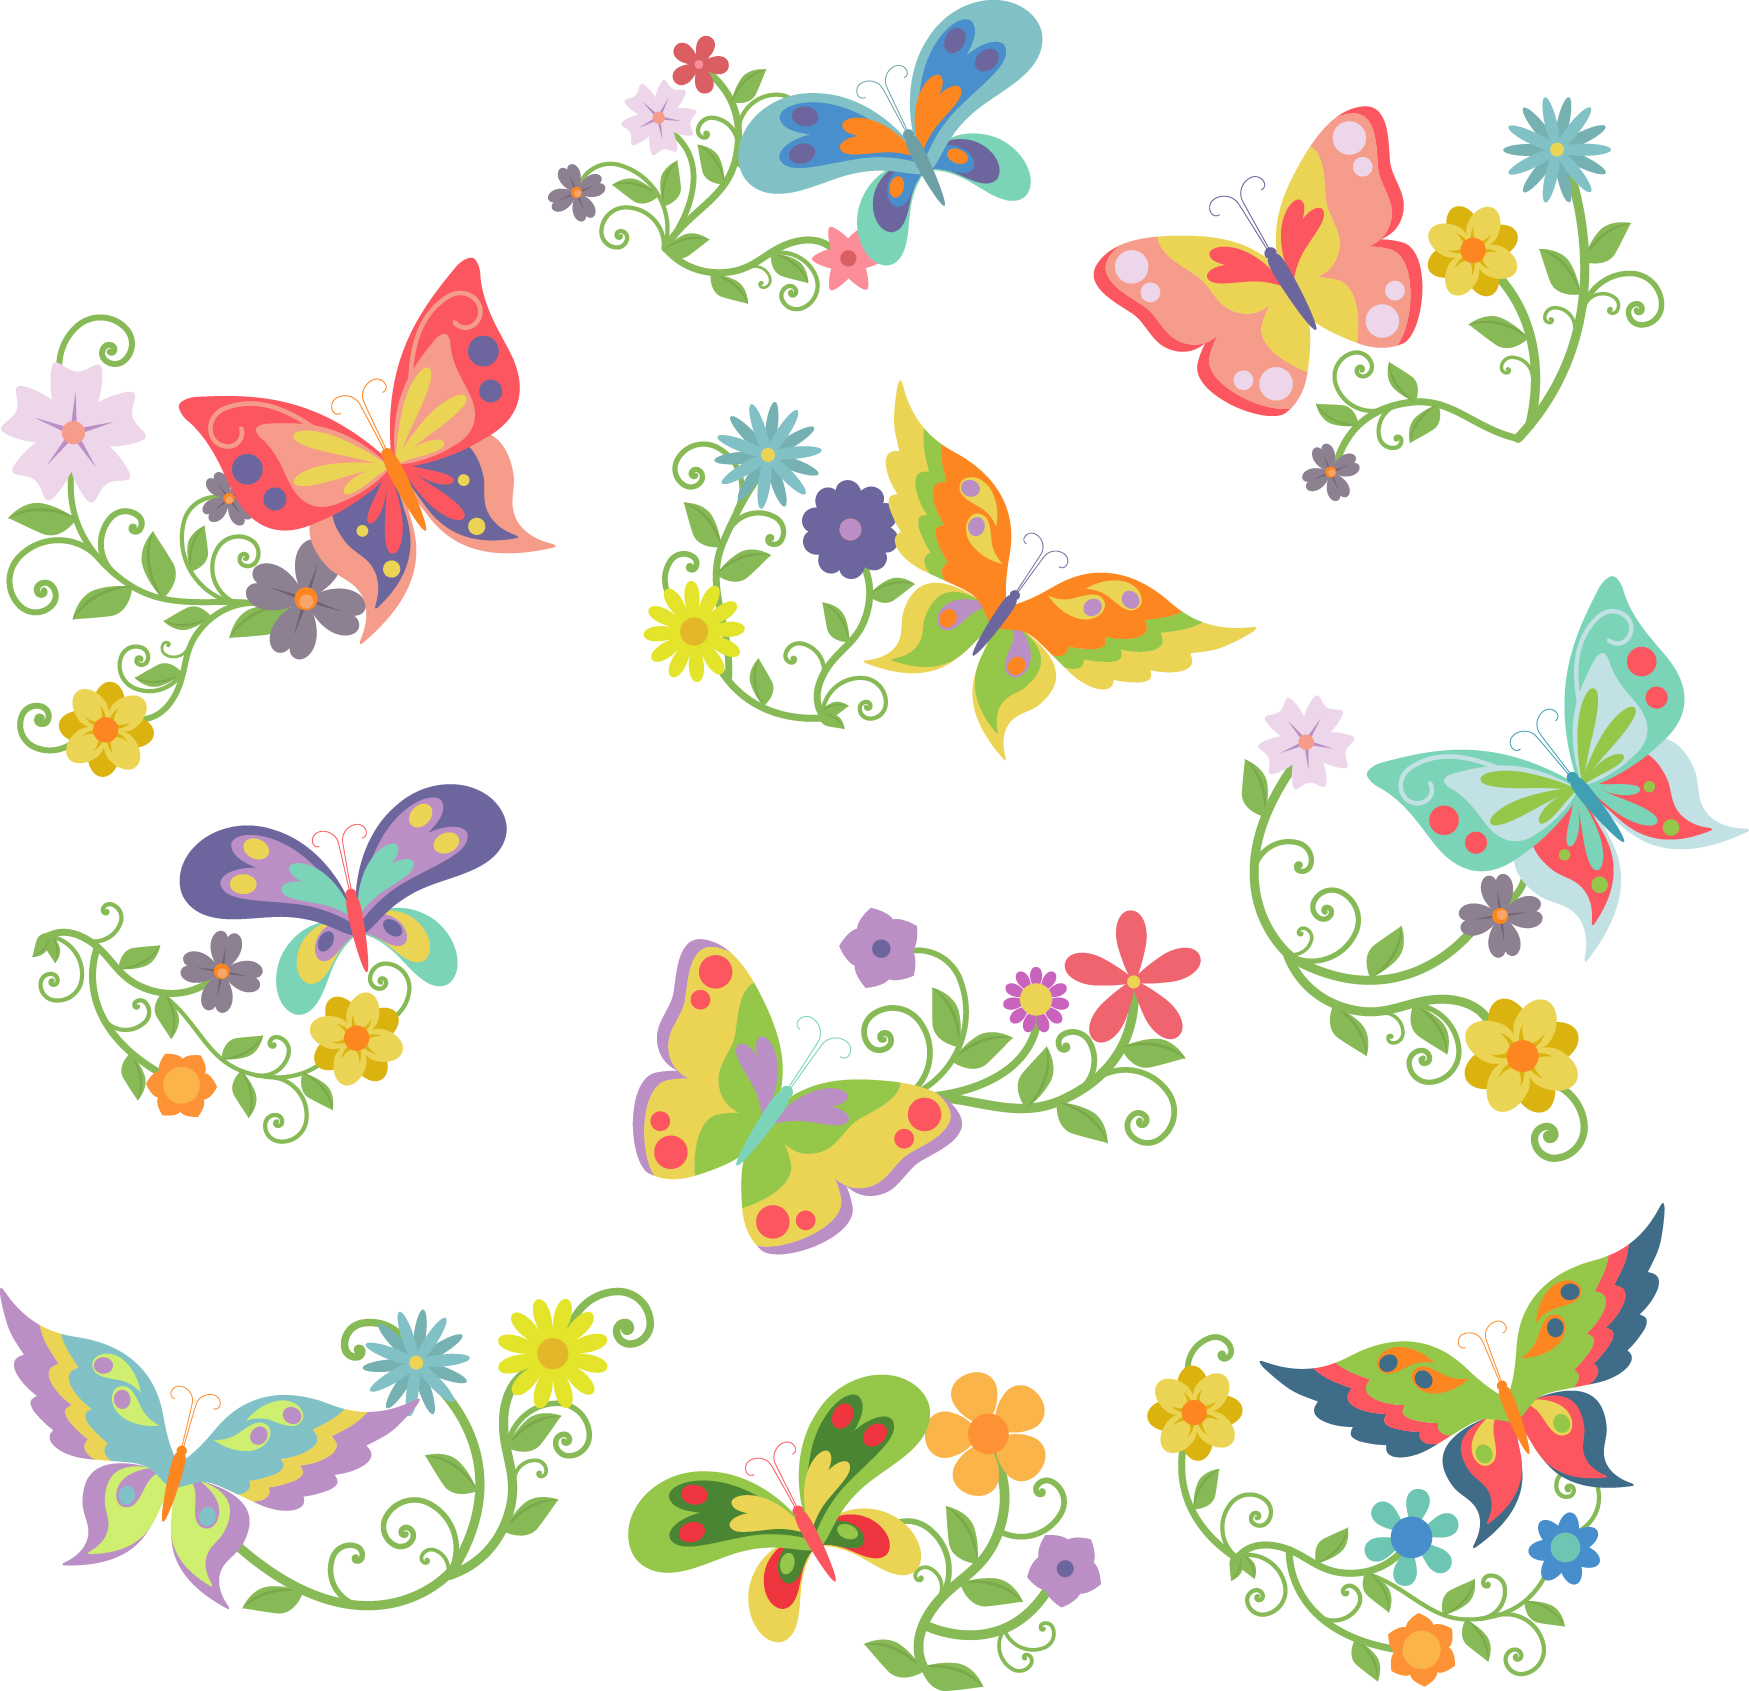 Butterfly flower clipart 5 » Clipart Station.